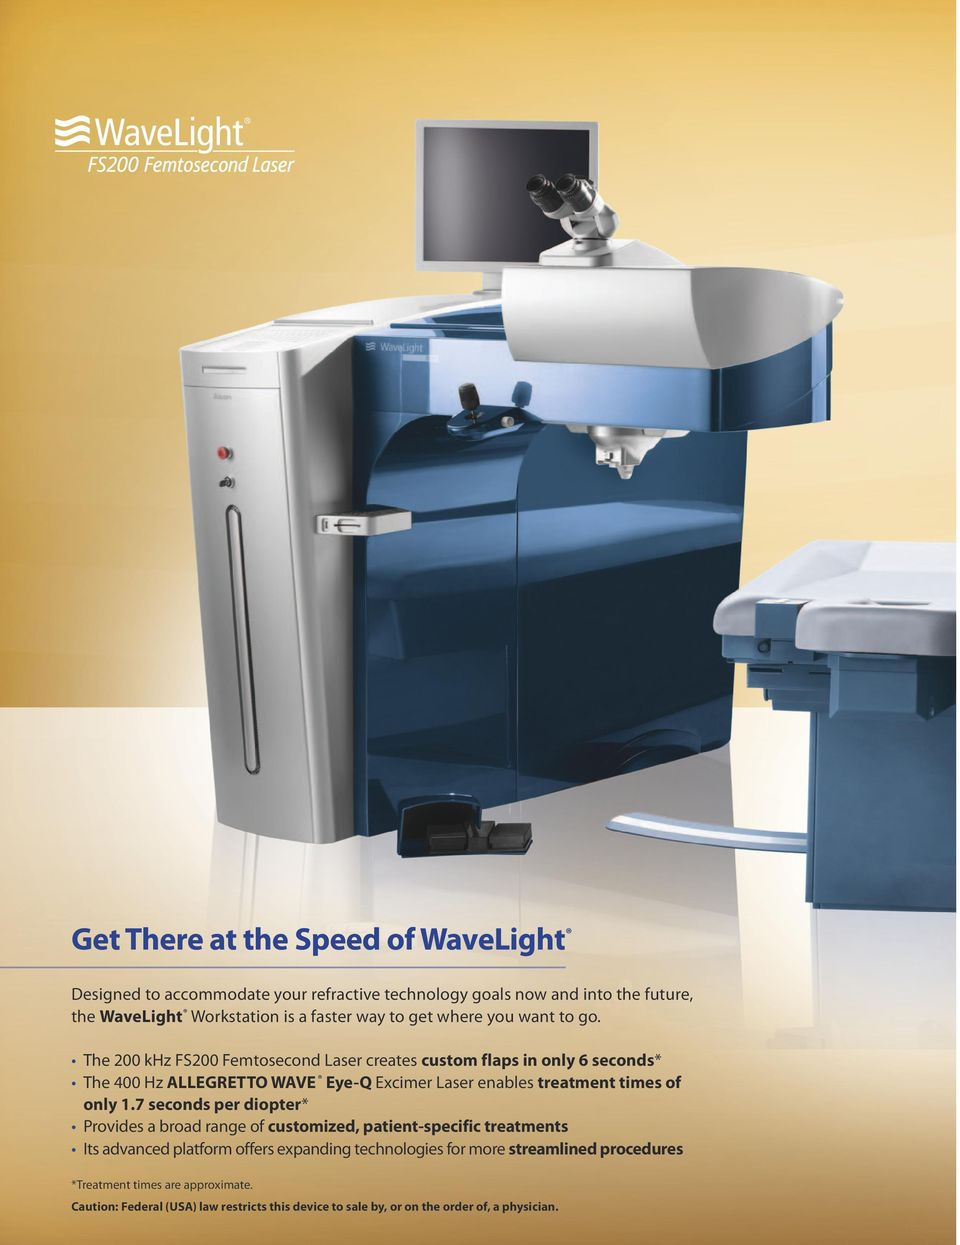 The 200 khz FS200 Femtosecond Laser creates custom flaps in only 6 seconds* The 400 Hz ALLEGRETTO WAVE Eye-Q Excimer Laser enables treatment times of only 1.